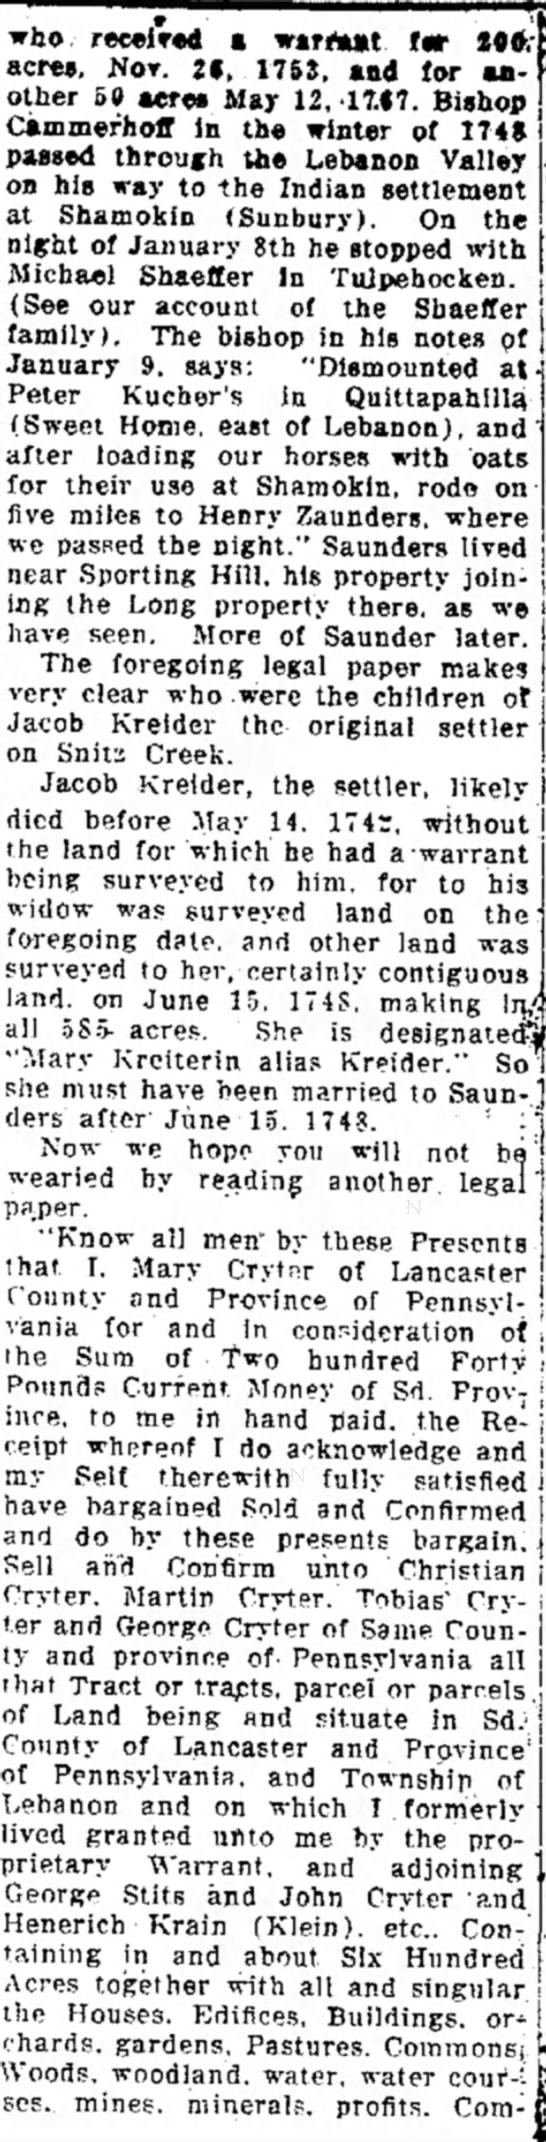 The History of the Kreider Family:  22 May 1919; colume 6 - who r«c*i>*d a wtrrturt f«r *0*.acres,...